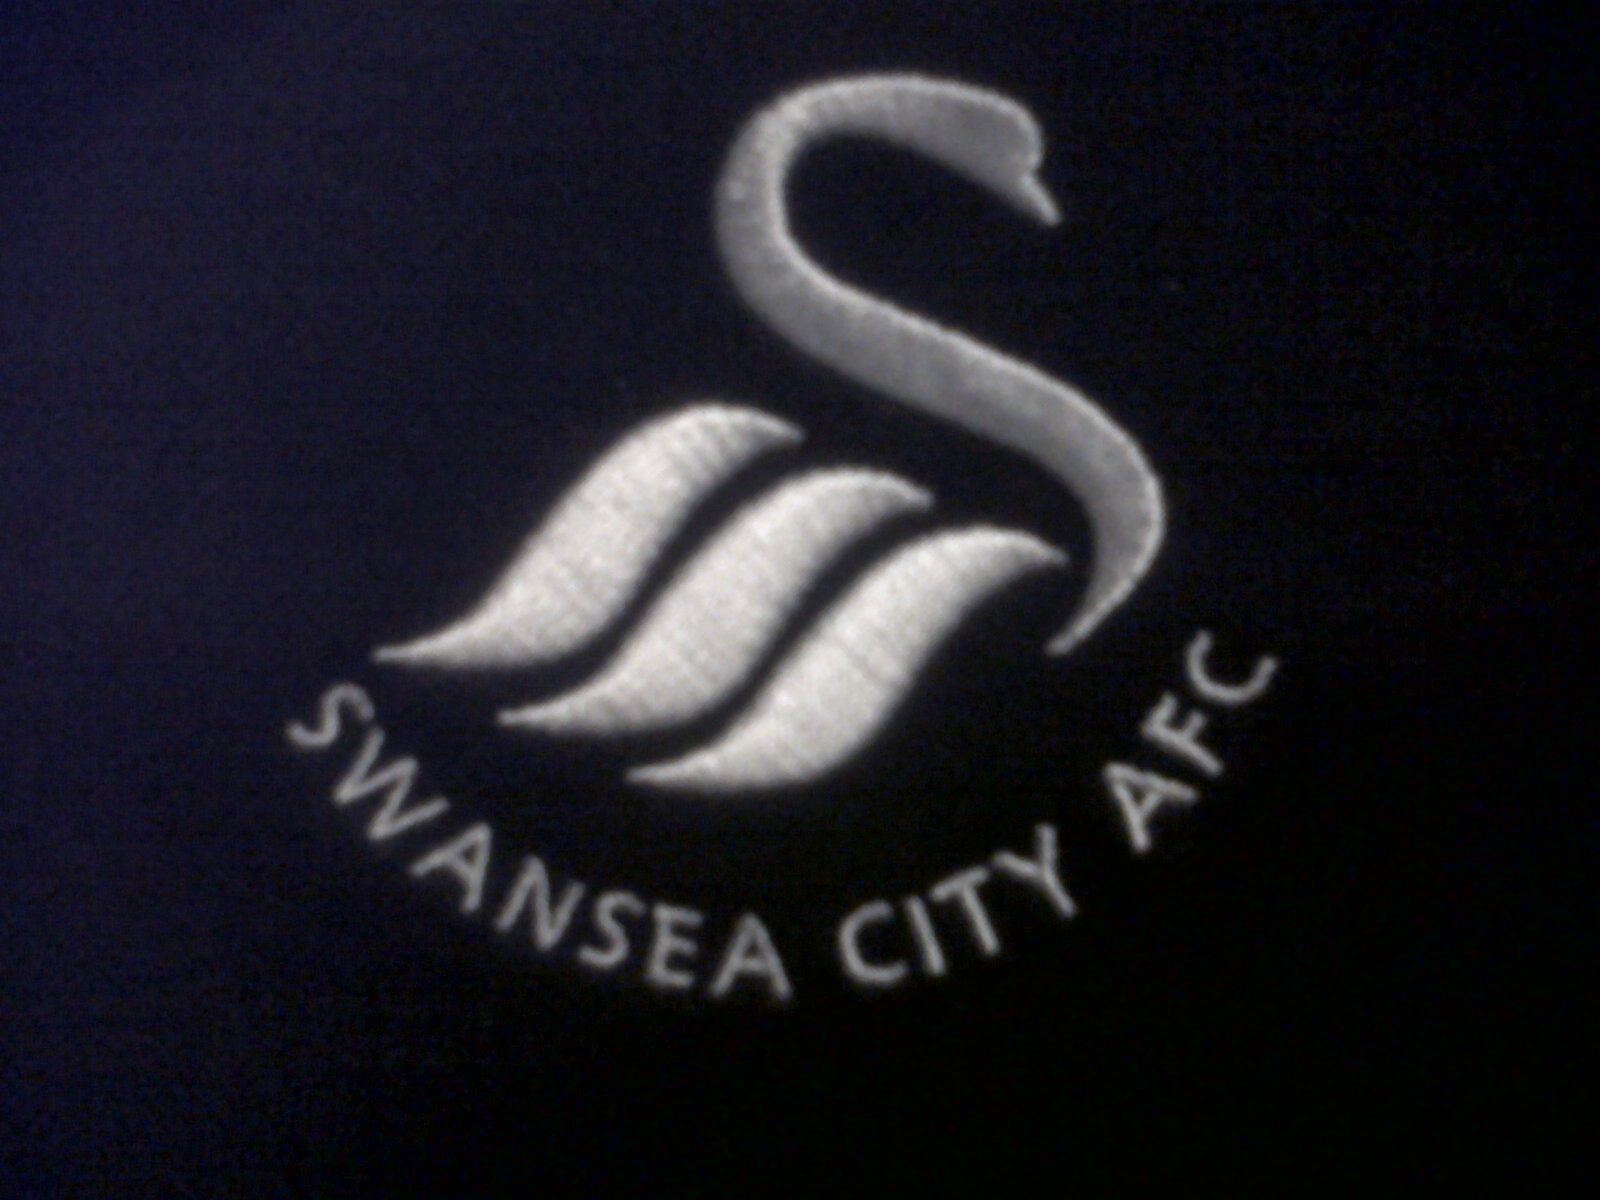 Swansea City HD Wallpaper